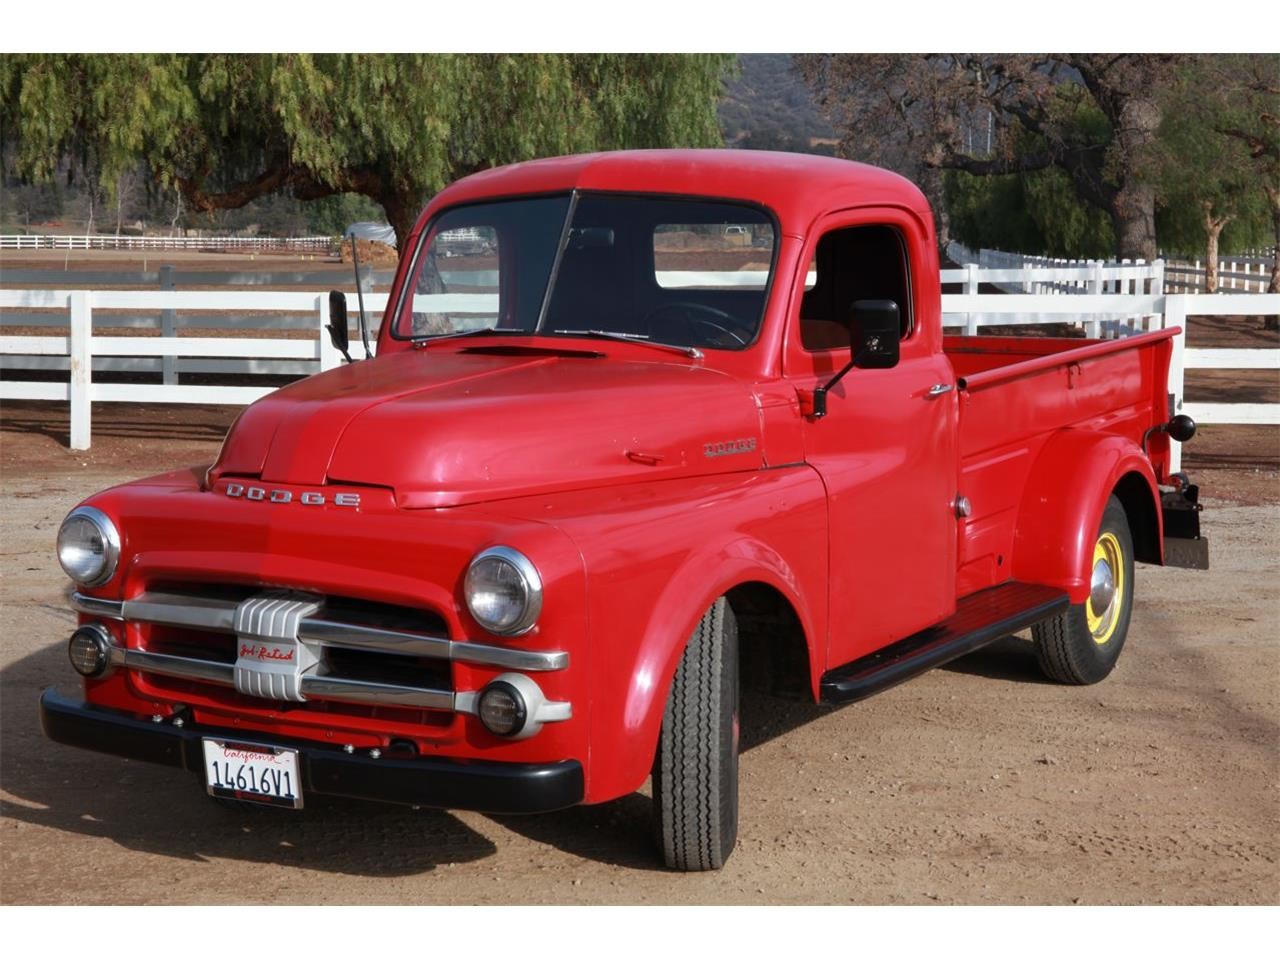 Thousand Oaks Dodge >> 1951 Dodge B3 For Sale In Thousand Oaks Ca Classiccarsbay Com